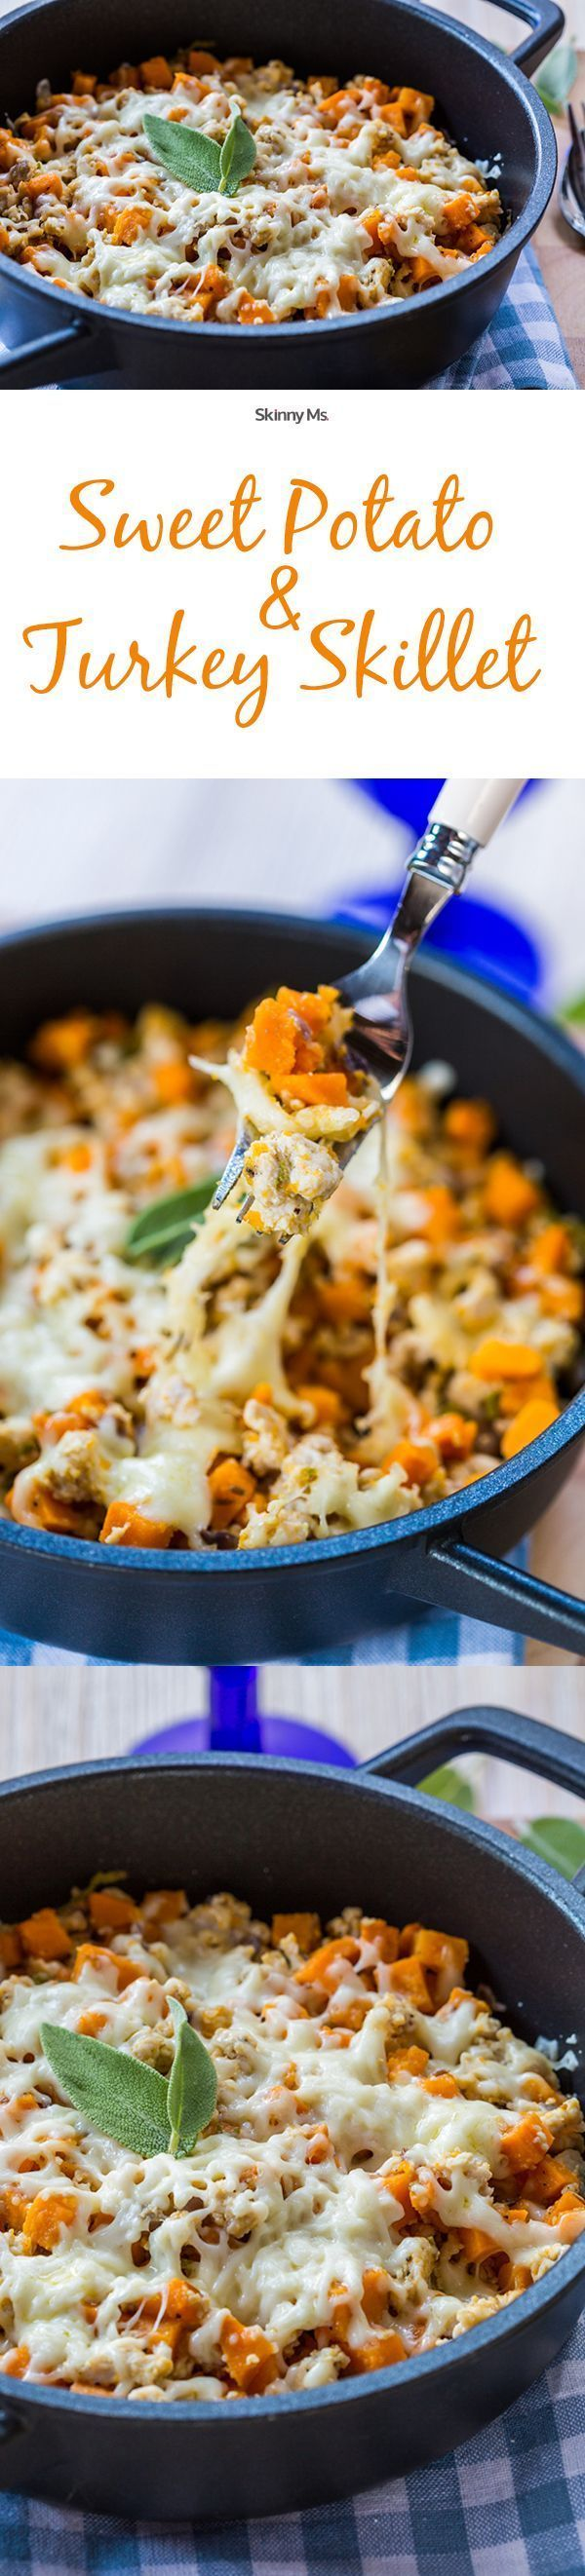 Super easy superfoods! This is the Skinny Ms. Sweet Potato & Turkey Skillet. This is so awesome for leftovers after Thanksgiving!